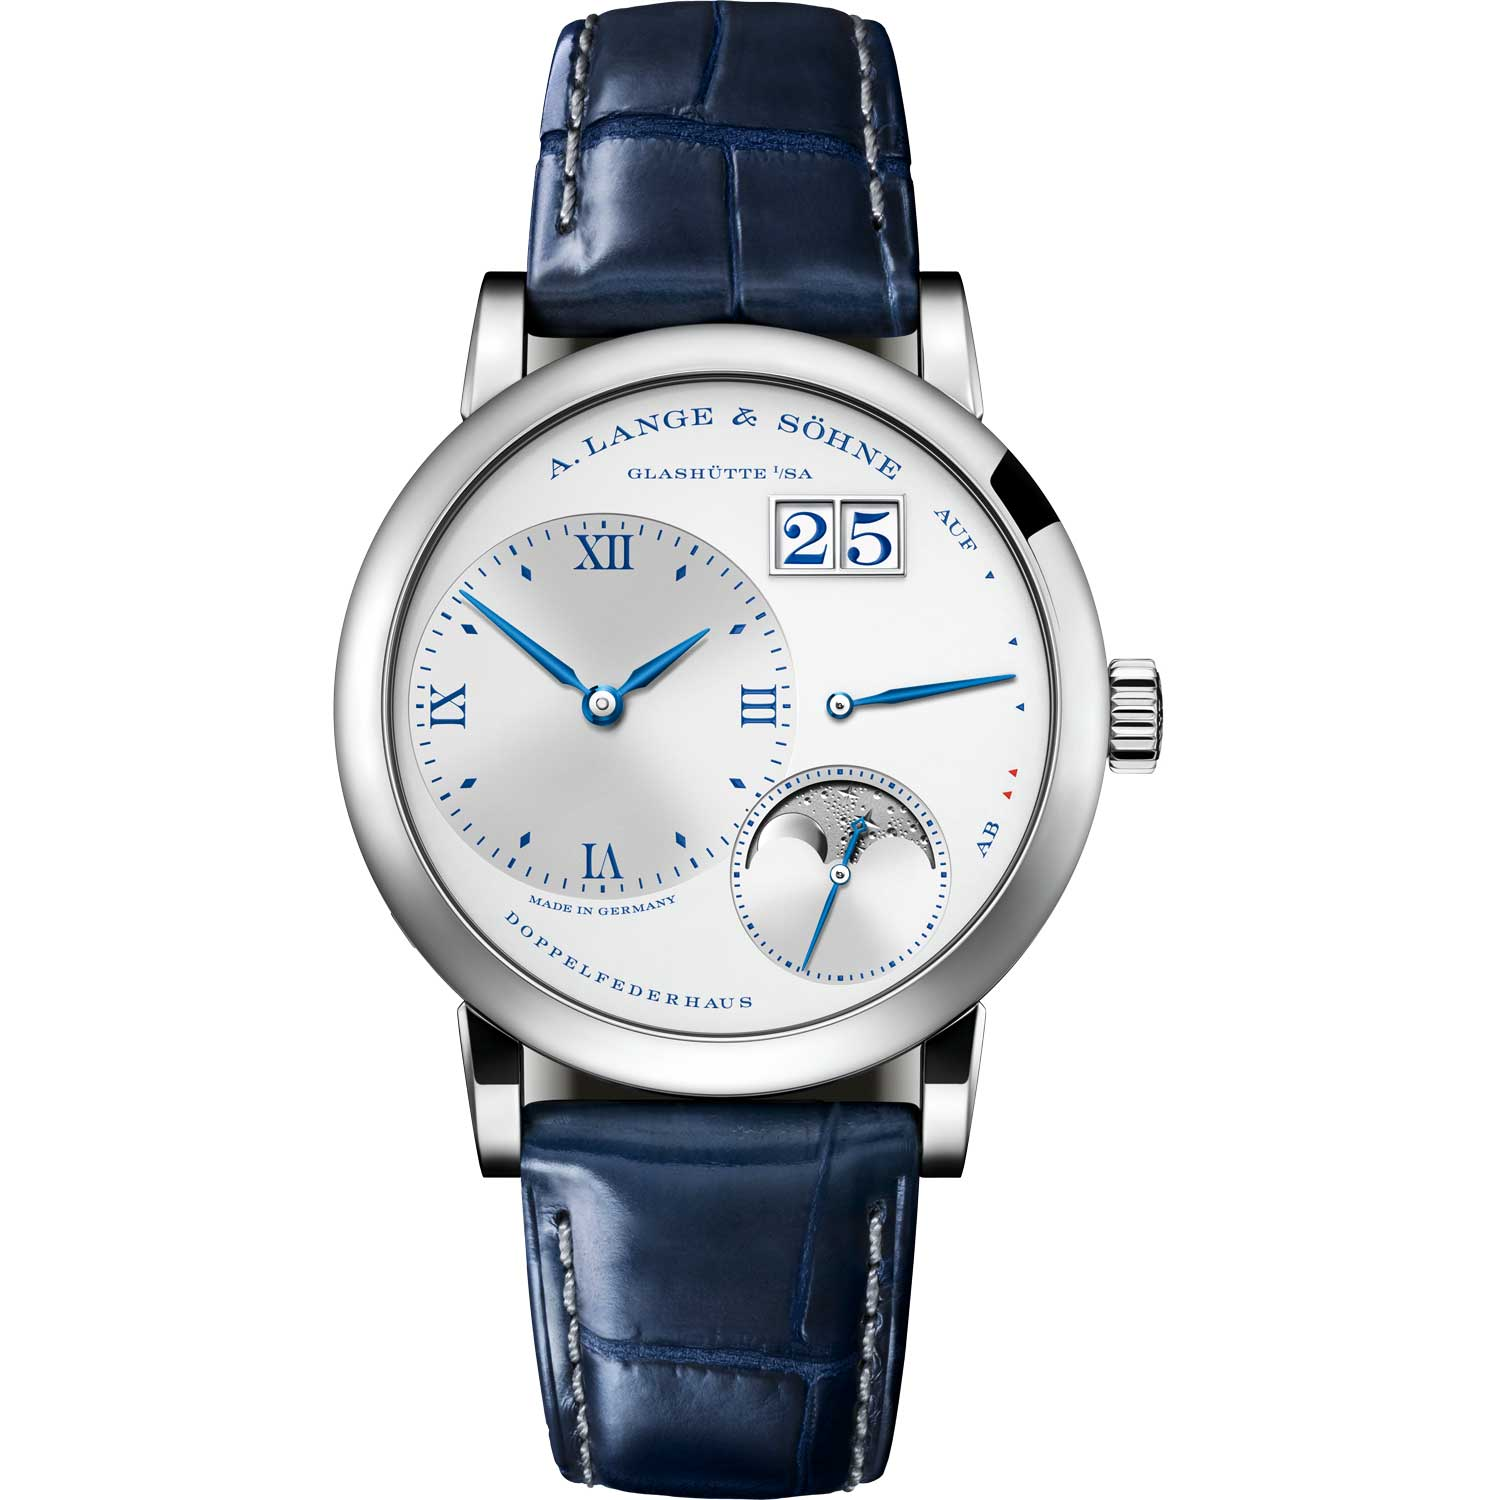 """LITTLE LANGE 1 MOON PHASE """"25th Anniversary"""" ref. 182.066; 36.80mm; 25-piece limited edition; launched September 2019"""